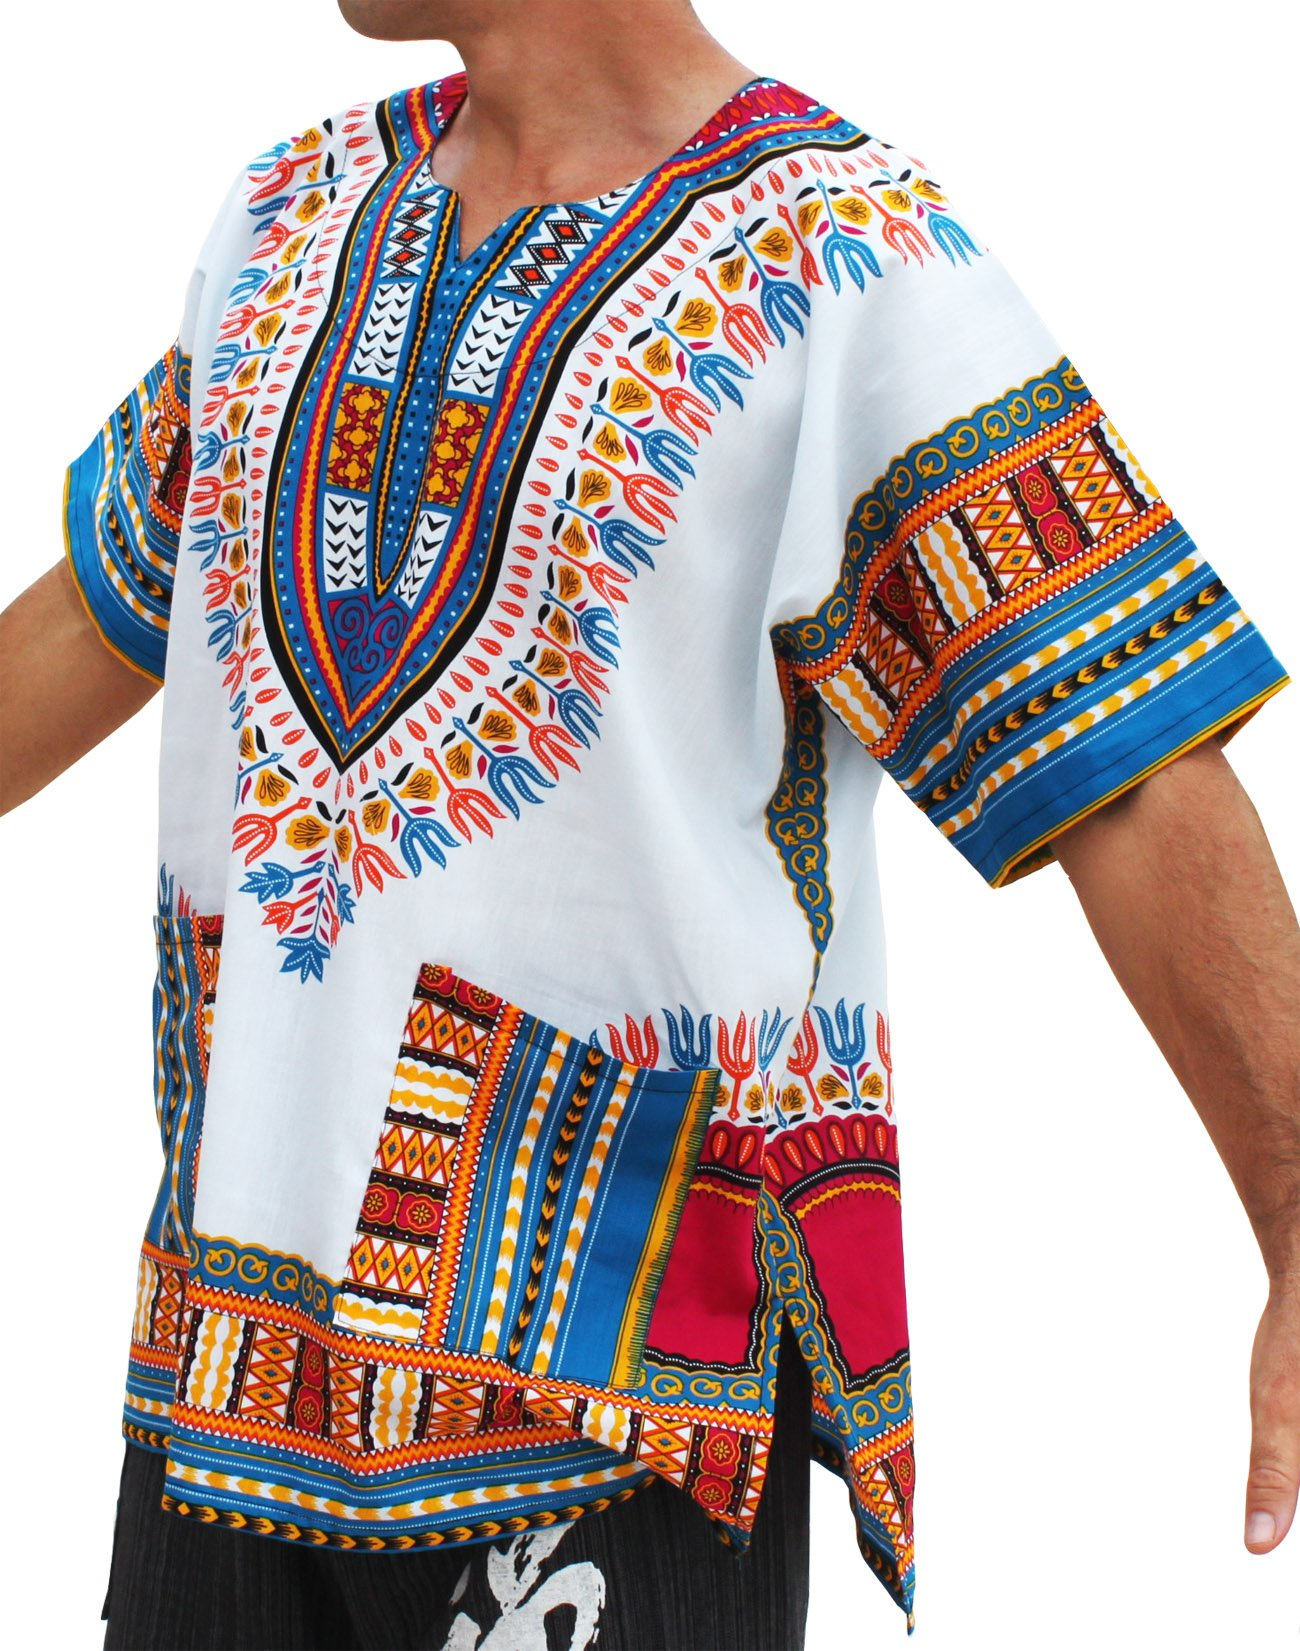 RaanPahMuang Brand Unisex Bright African White Dashiki Cotton Shirt #56 Medium blue XX-Large